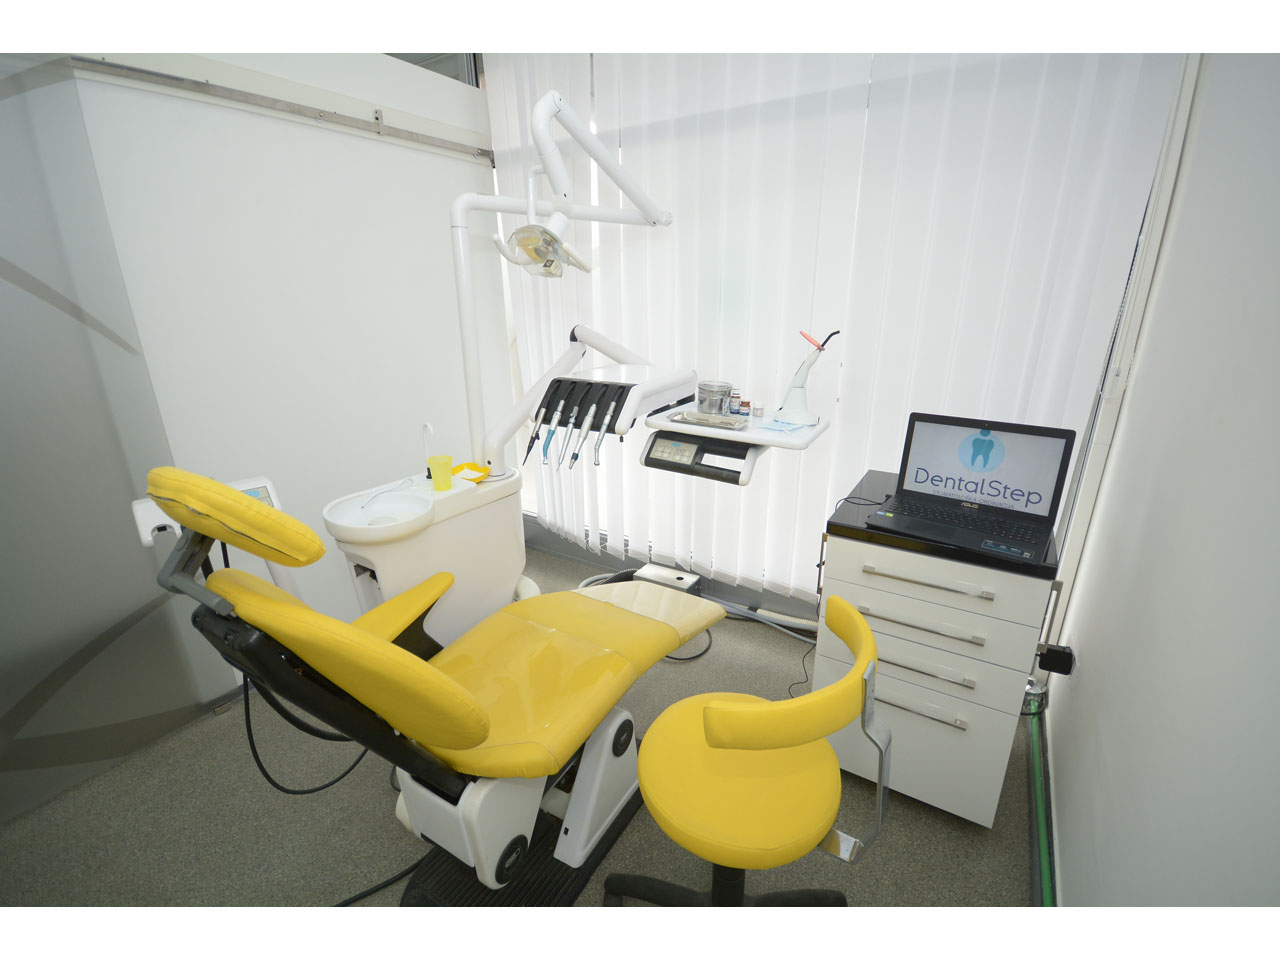 DENTAL STEP STOMATOLOŠKA ORDINACIJA Dental surgery Beograd